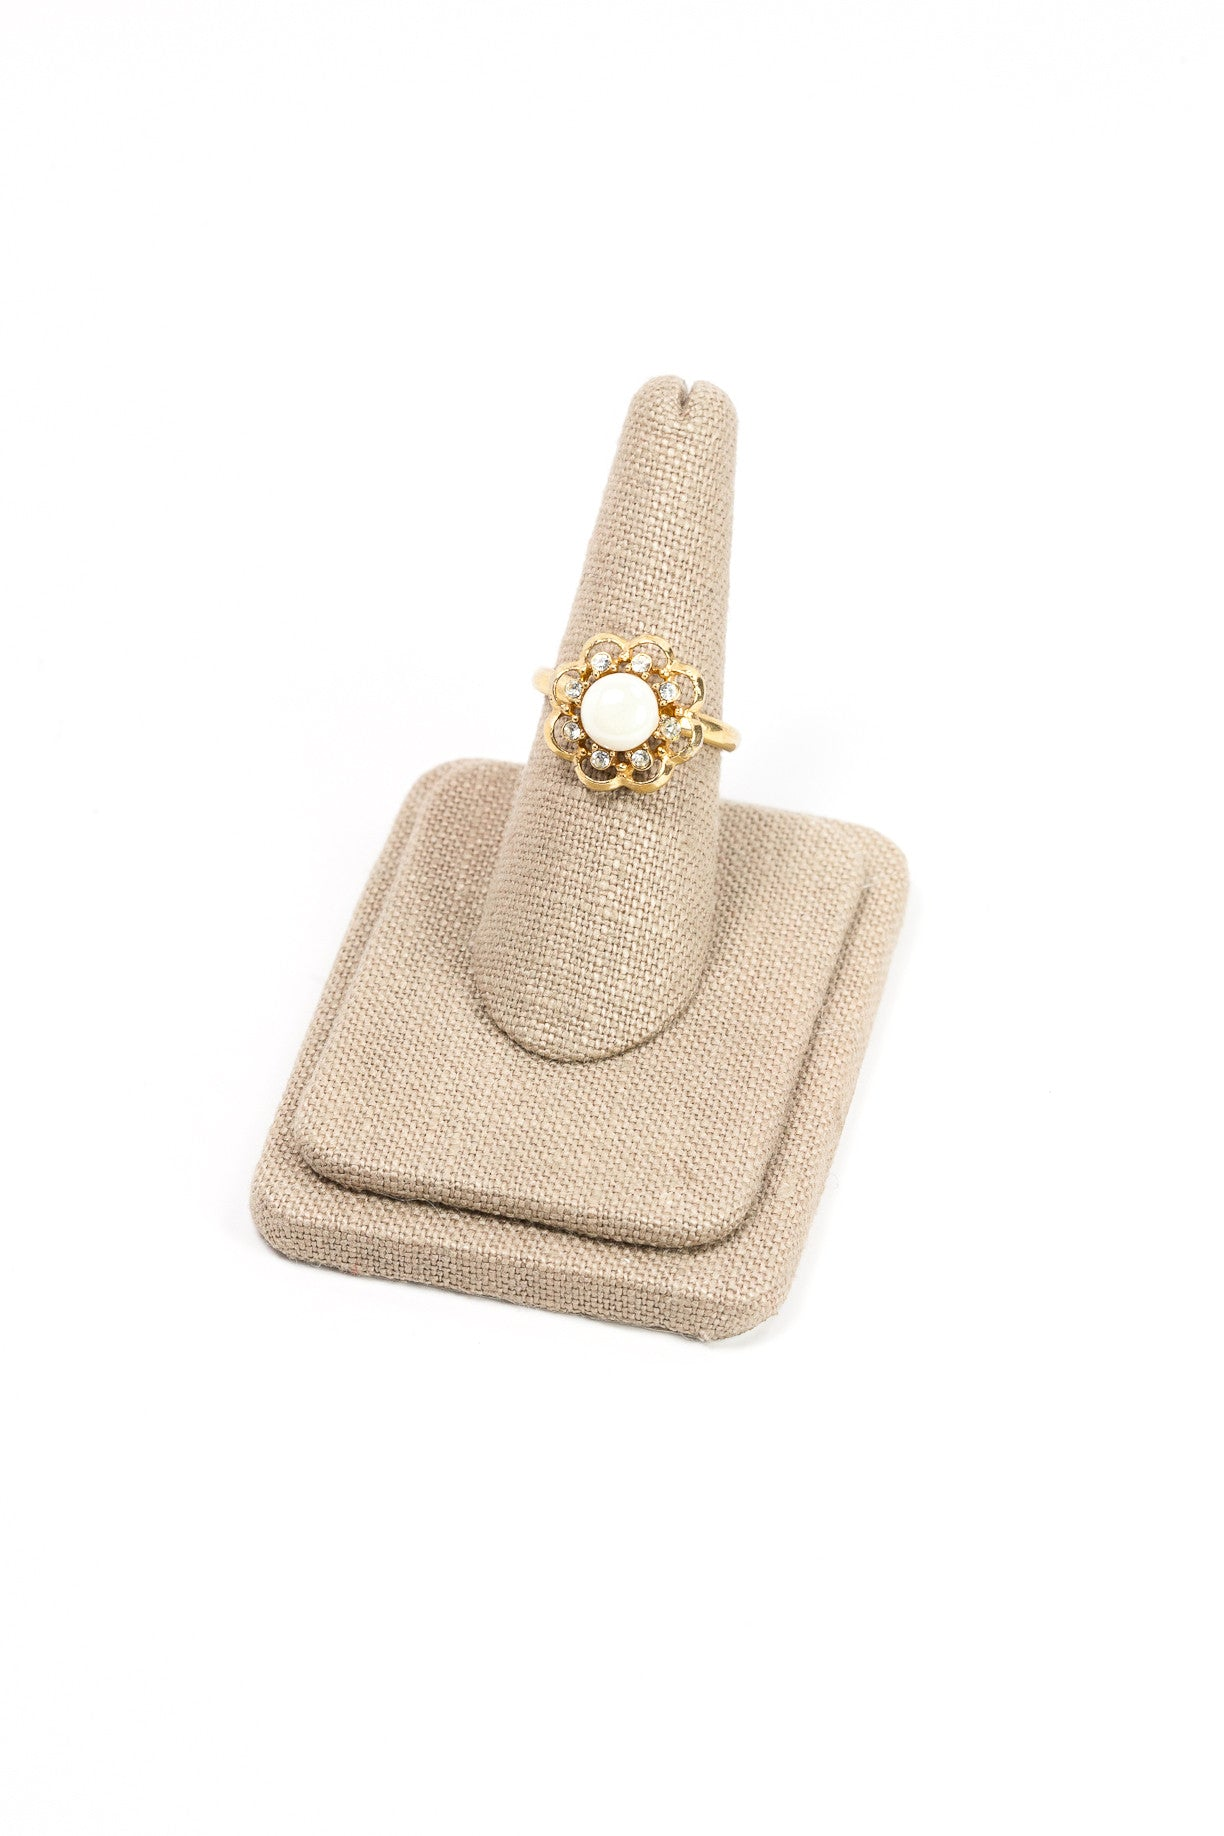 60's__Sarah Coventry__Adjustable Pearl Ring